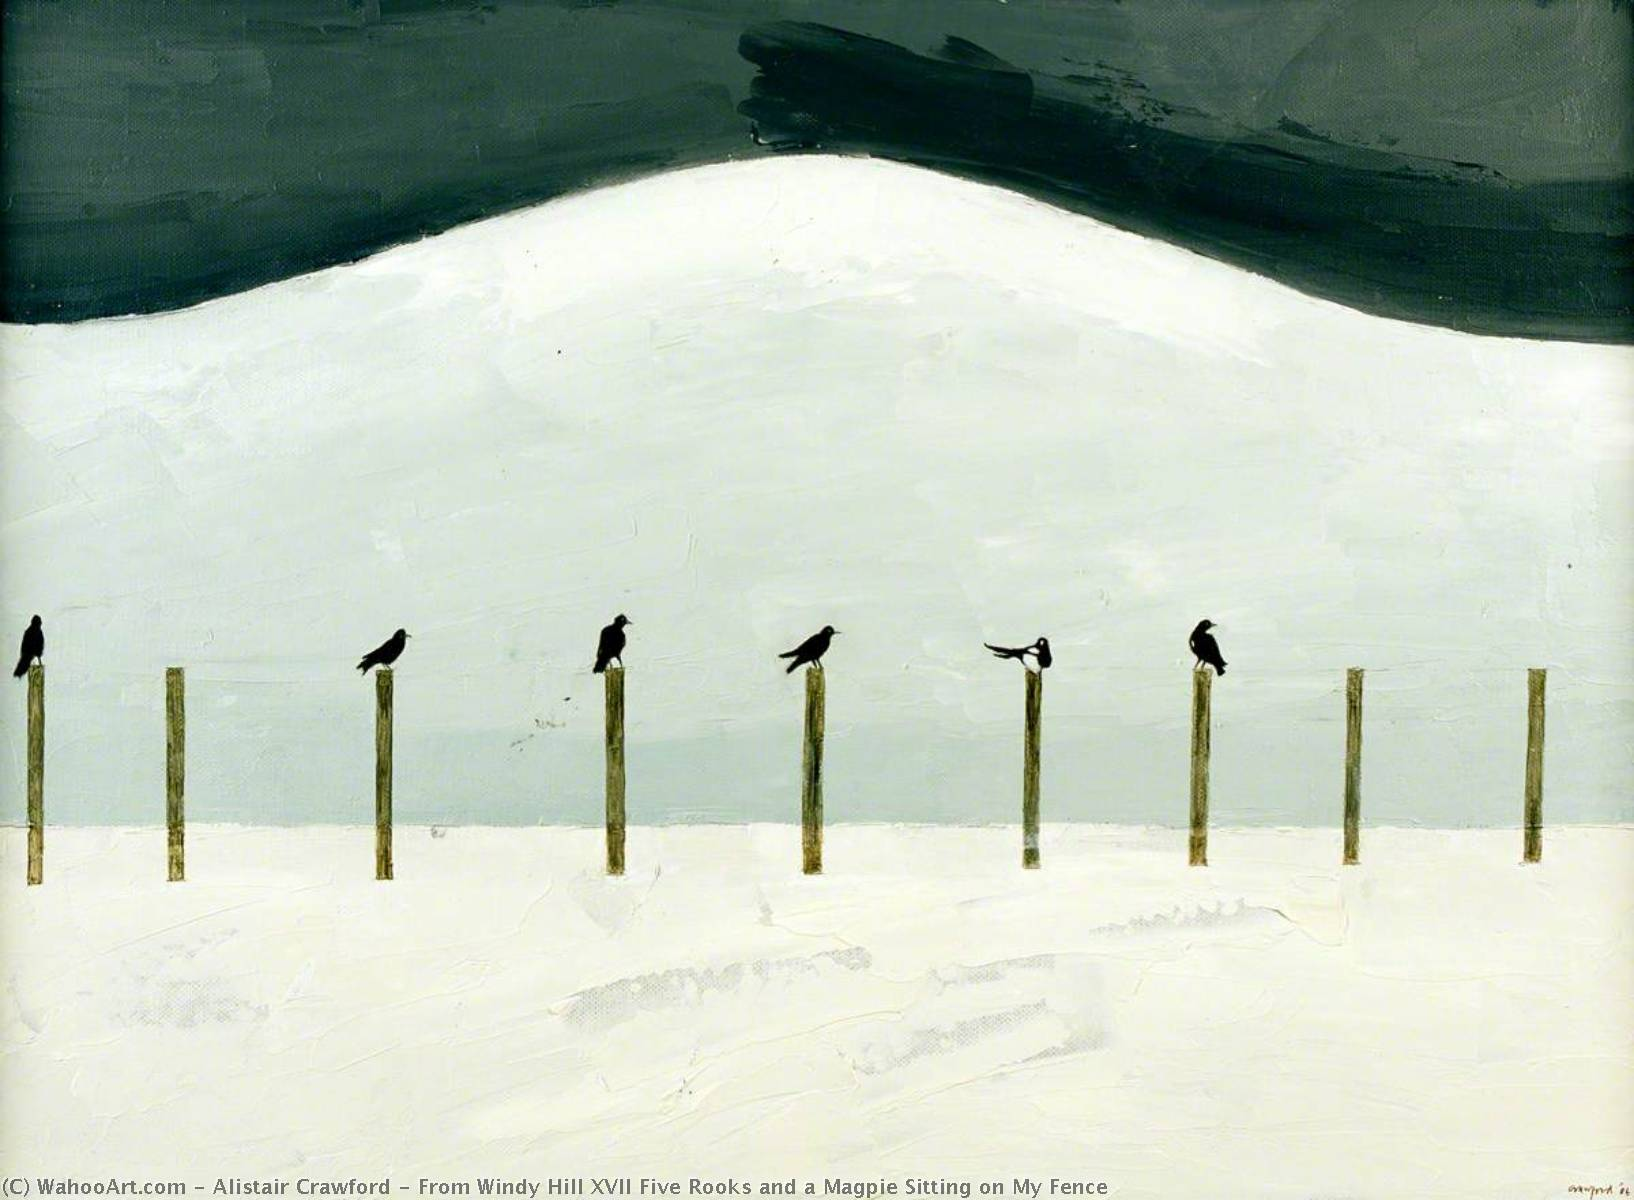 From Windy Hill XVII Five Rooks and a Magpie Sitting on My Fence, Oil On Canvas by Alistair Crawford